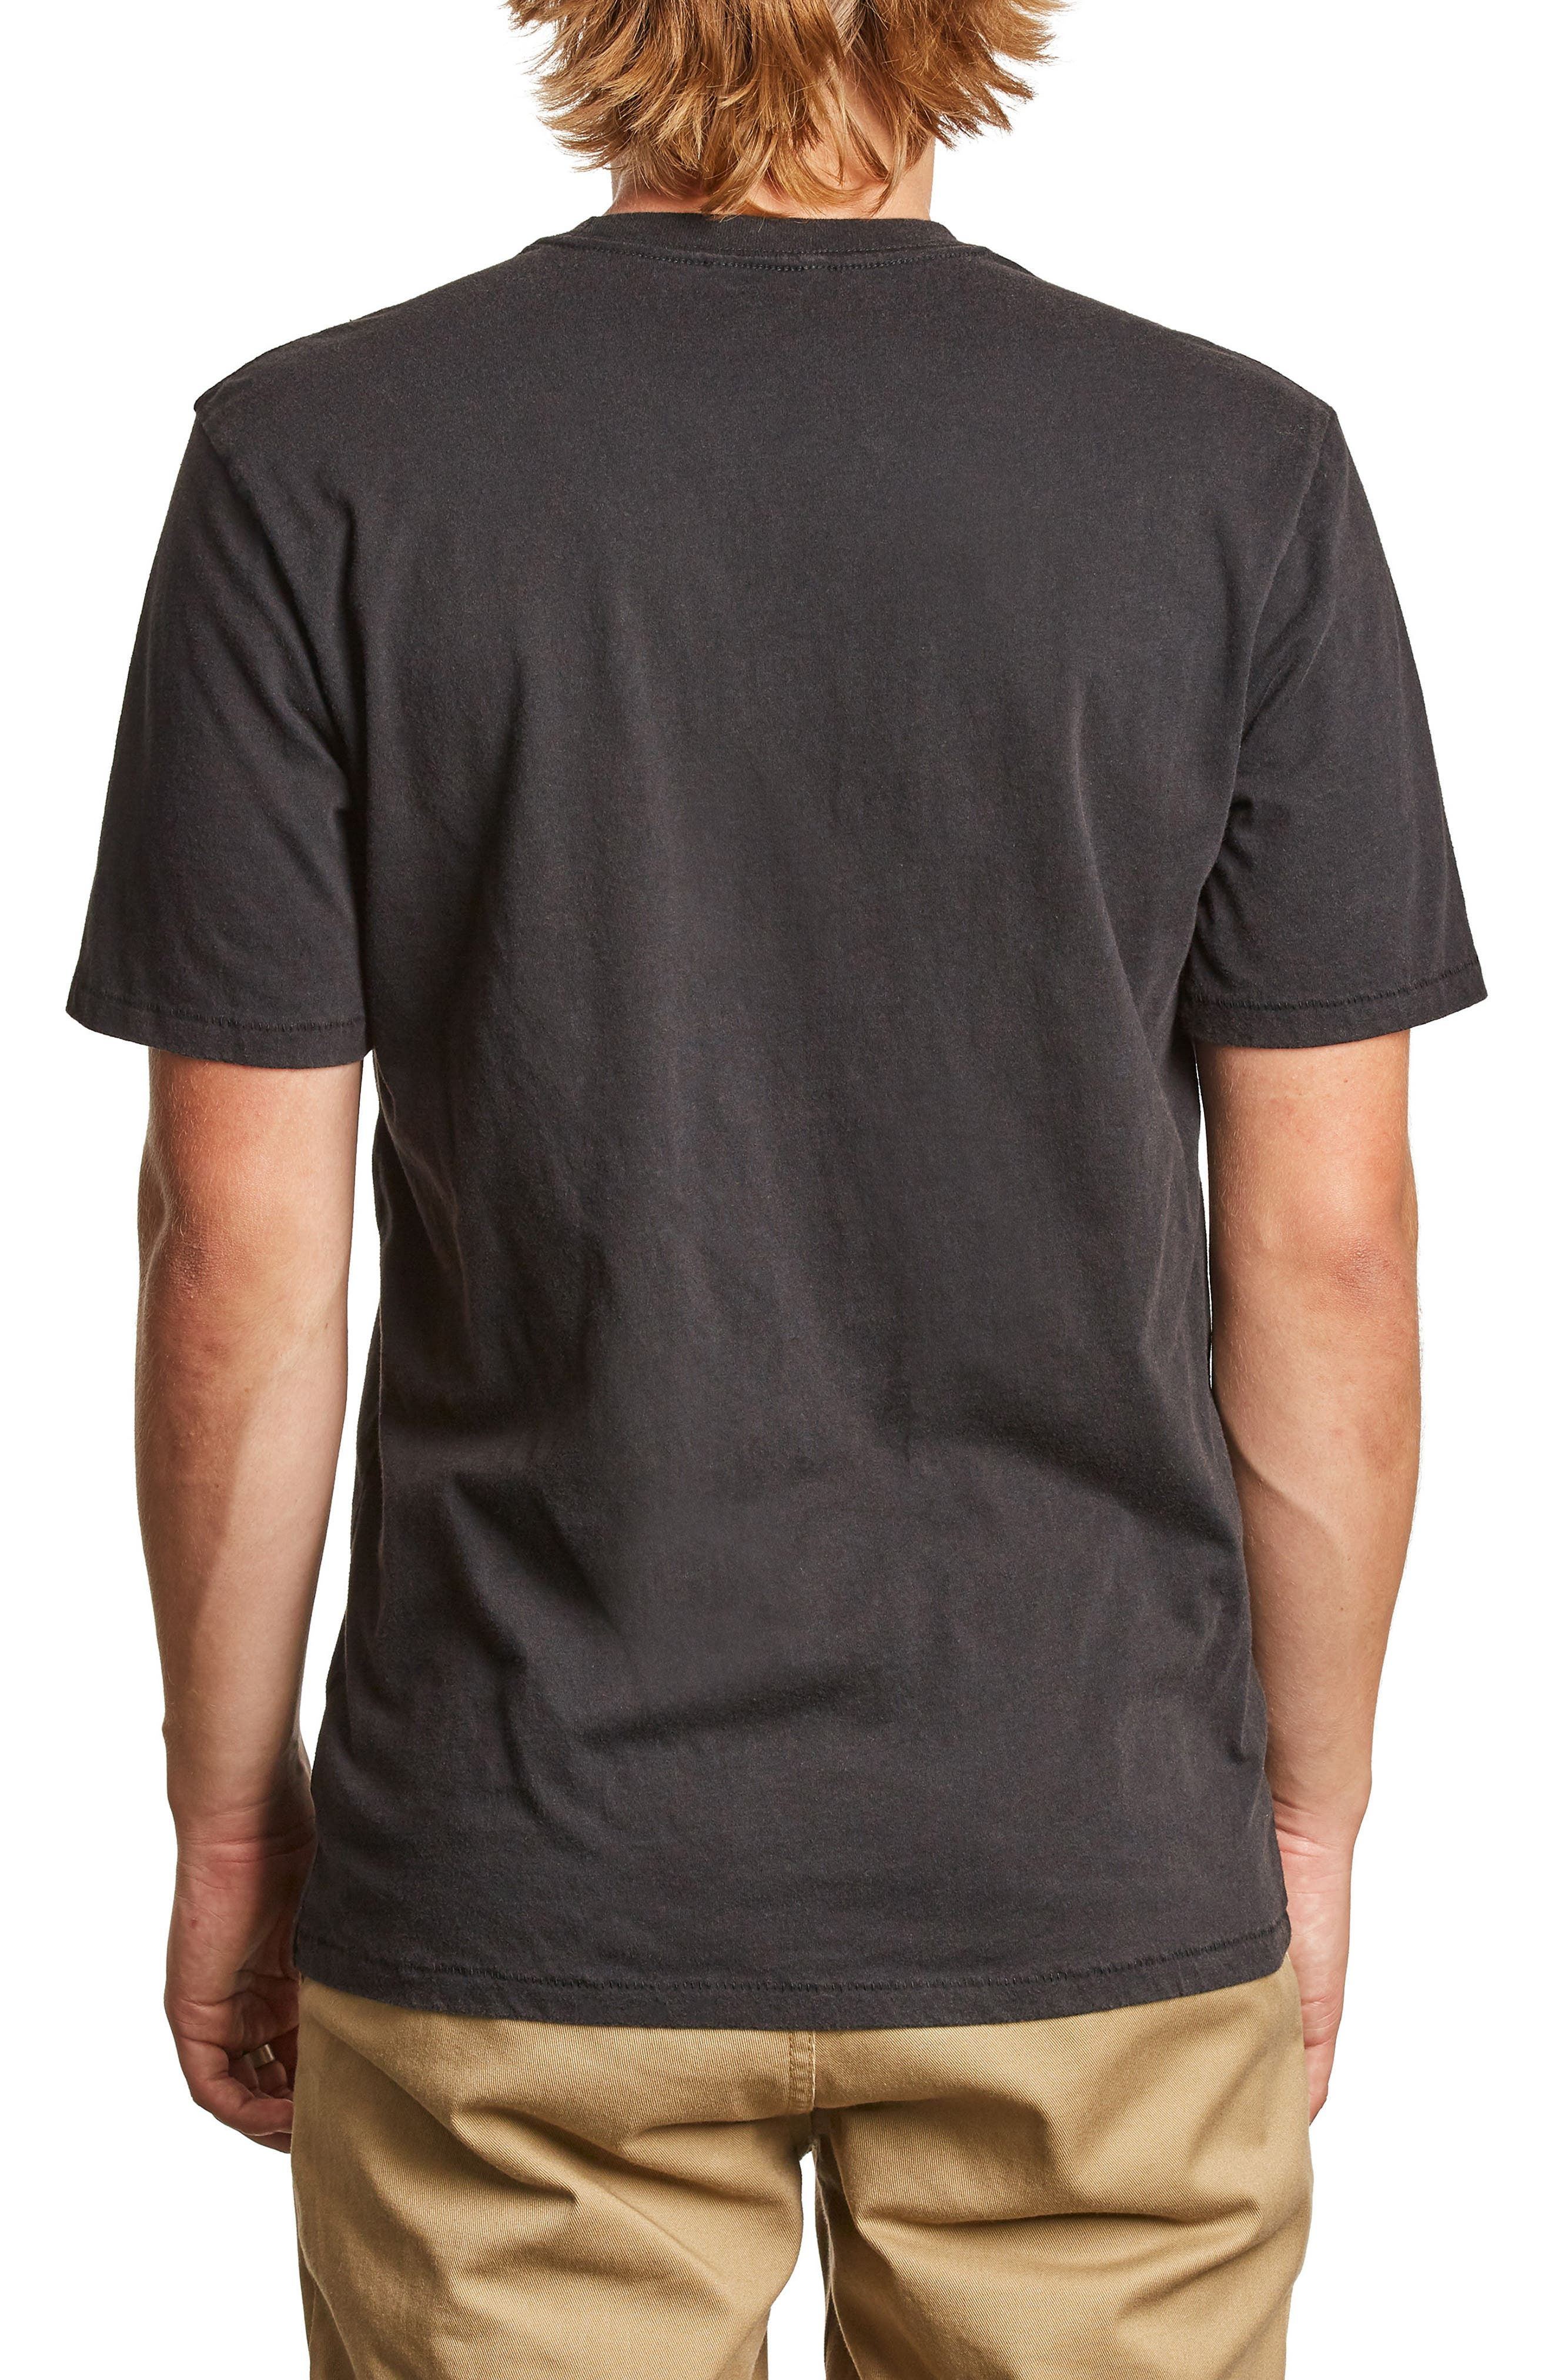 x Coors Filtered Pocket T-Shirt,                             Alternate thumbnail 2, color,                             005